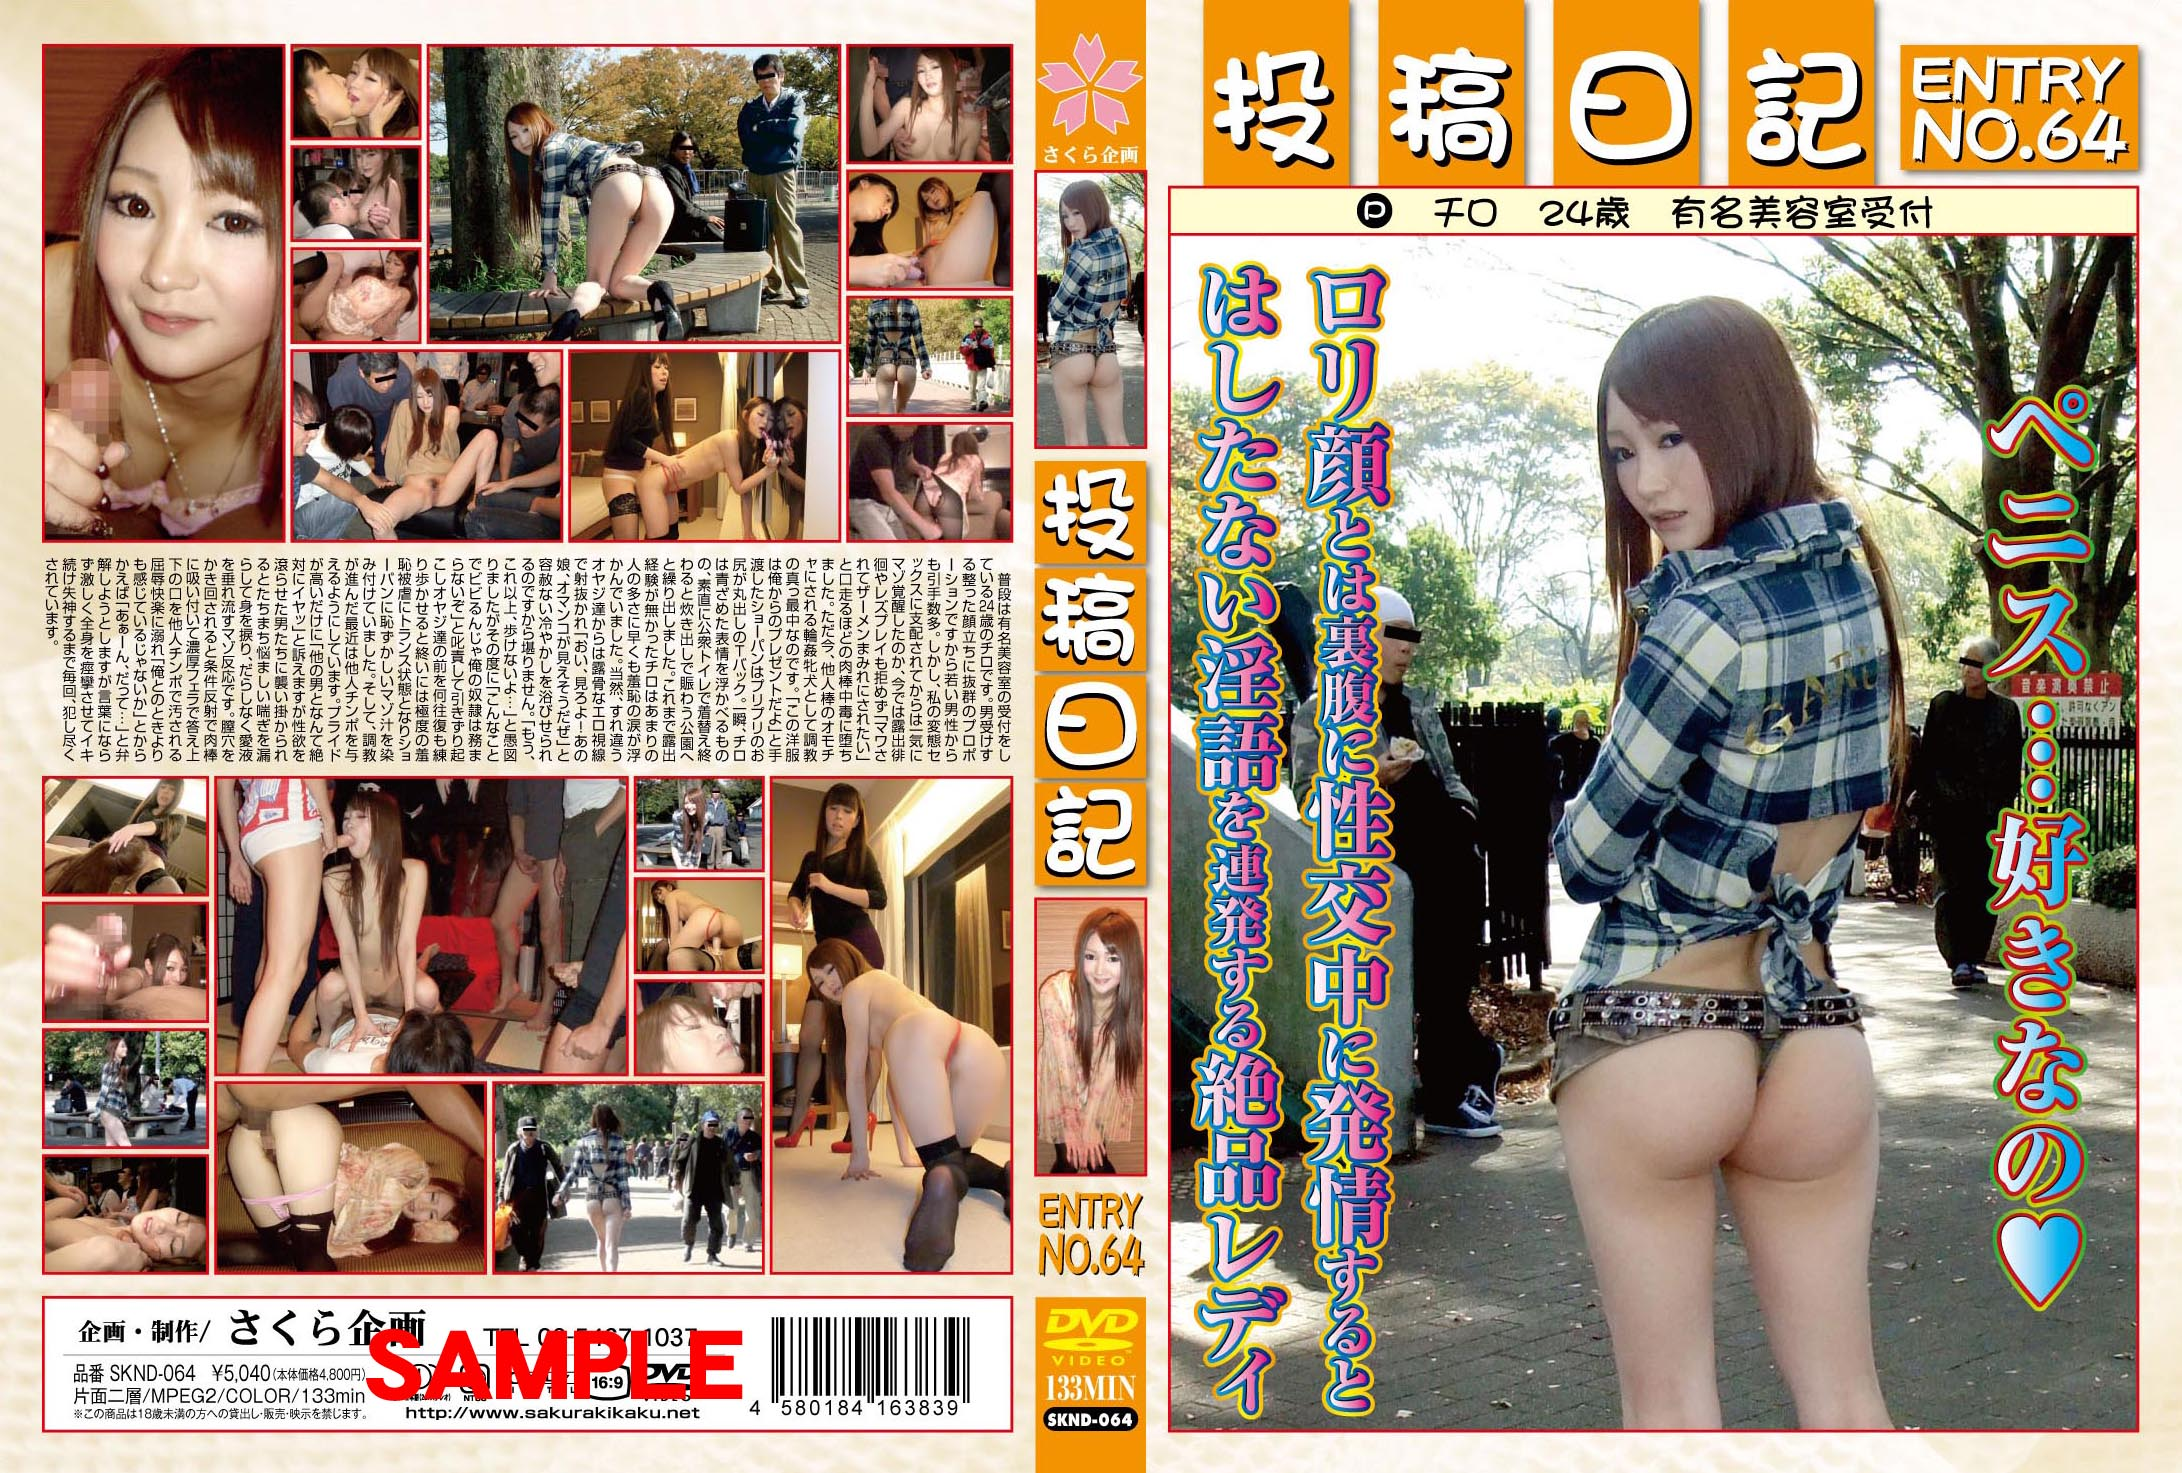 SKND-064-cover.